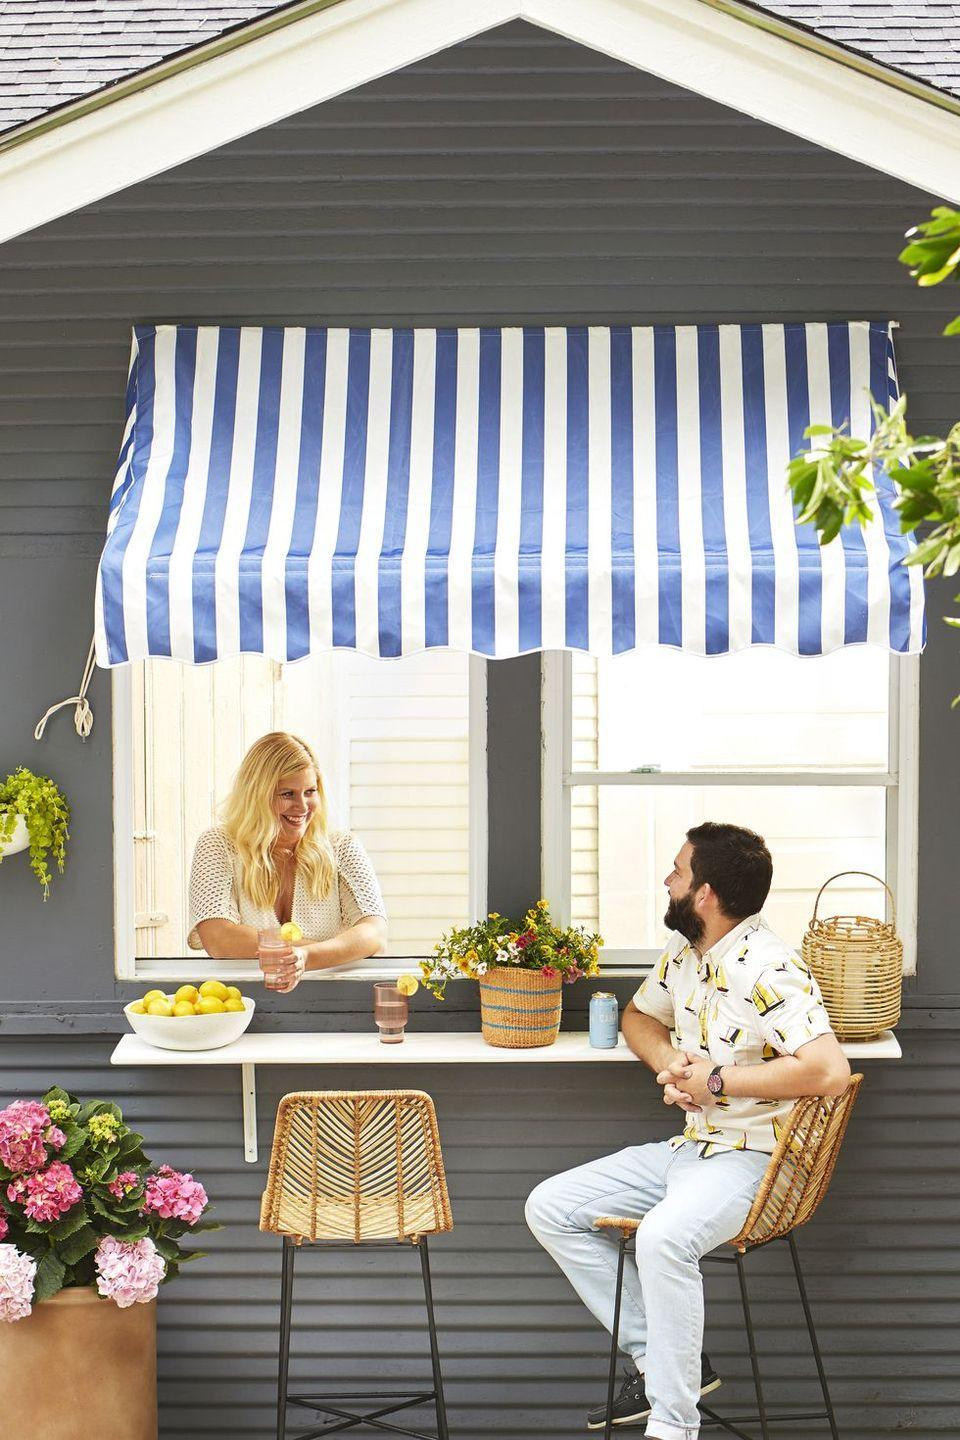 <p>Keep party guests out of the kitchen with this DIY serving station. Simply install a serving ledge under a window and dress the space with weather-resistant bar stools and a patterned awning. </p>